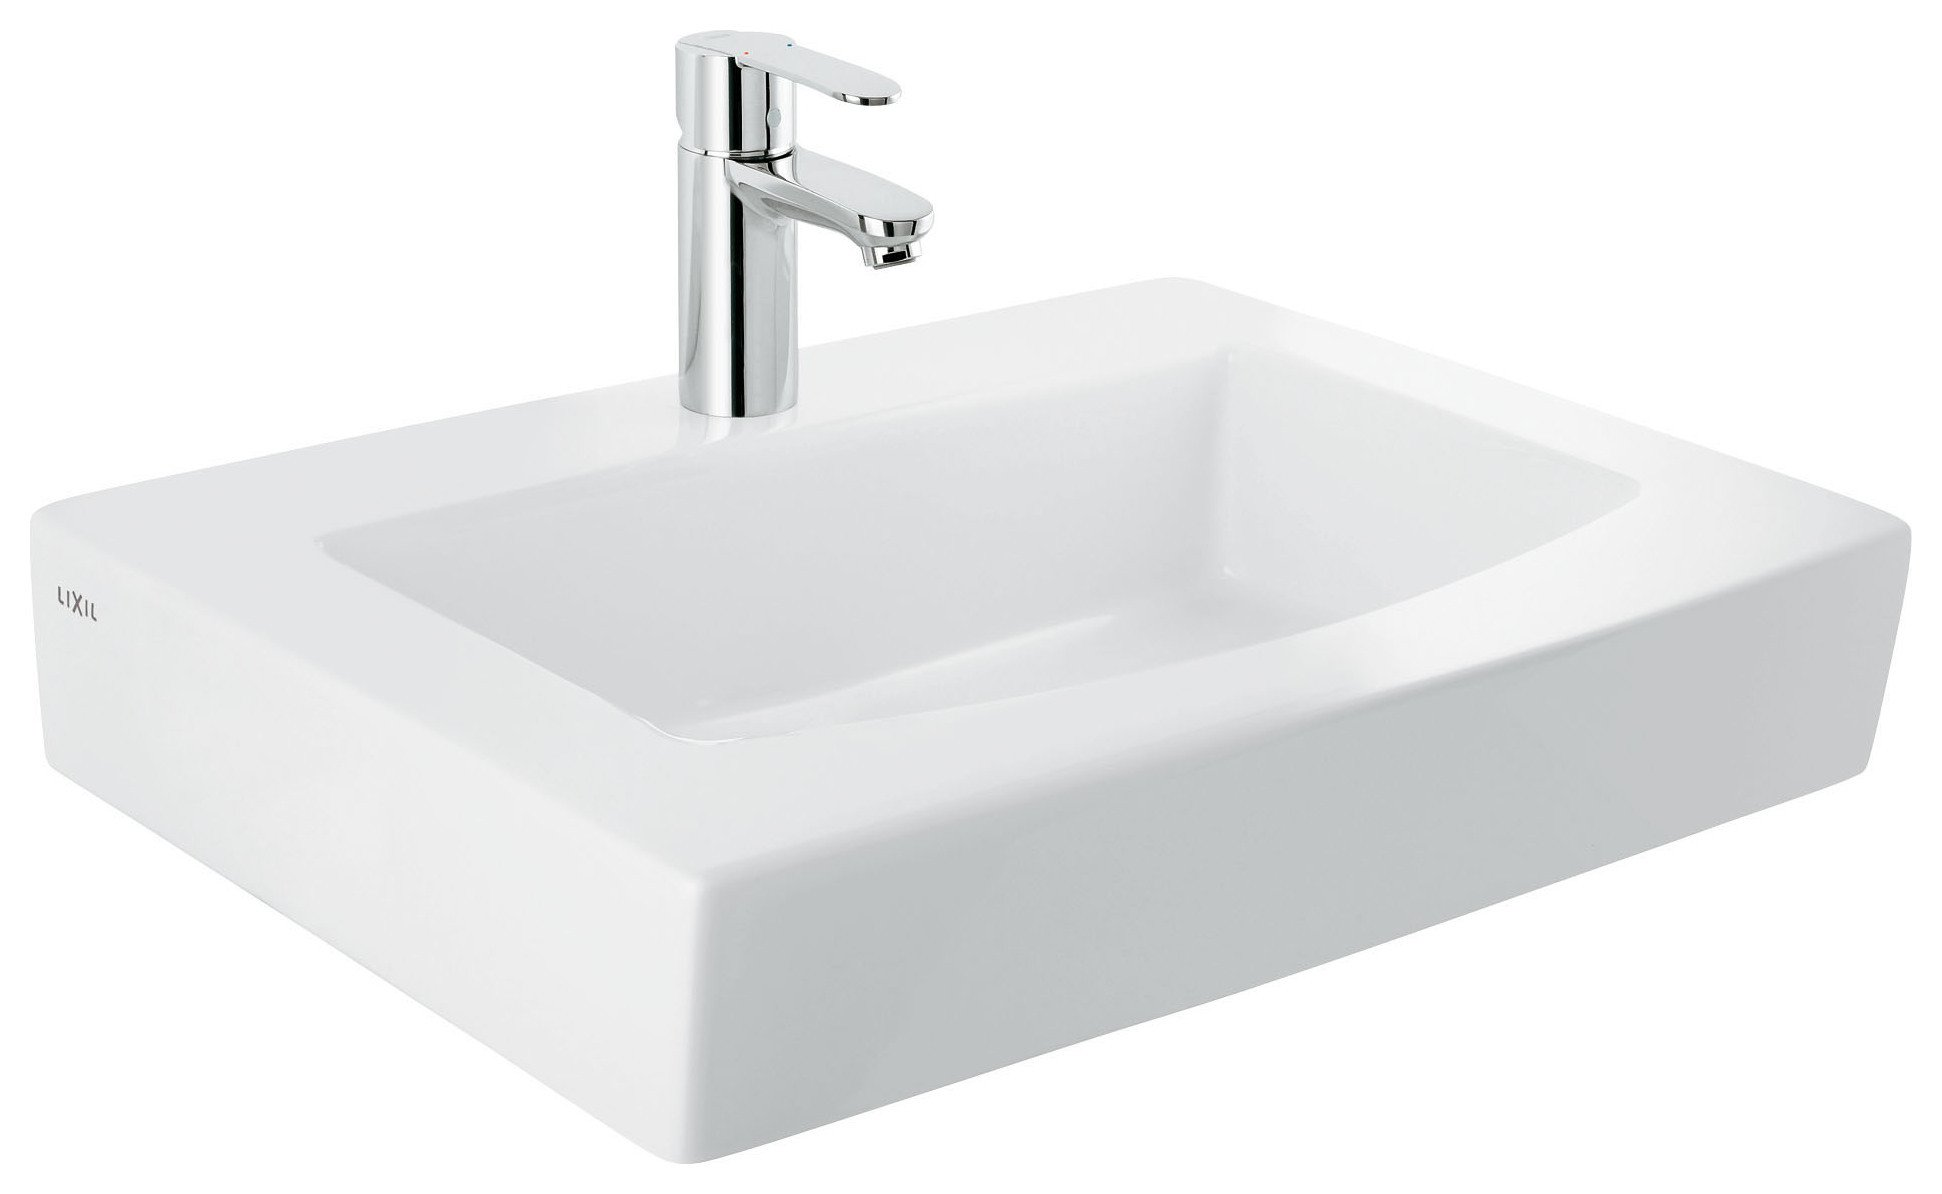 Image of Grohe Cosmopolitian 60cm Square Basin Mixer Tap.